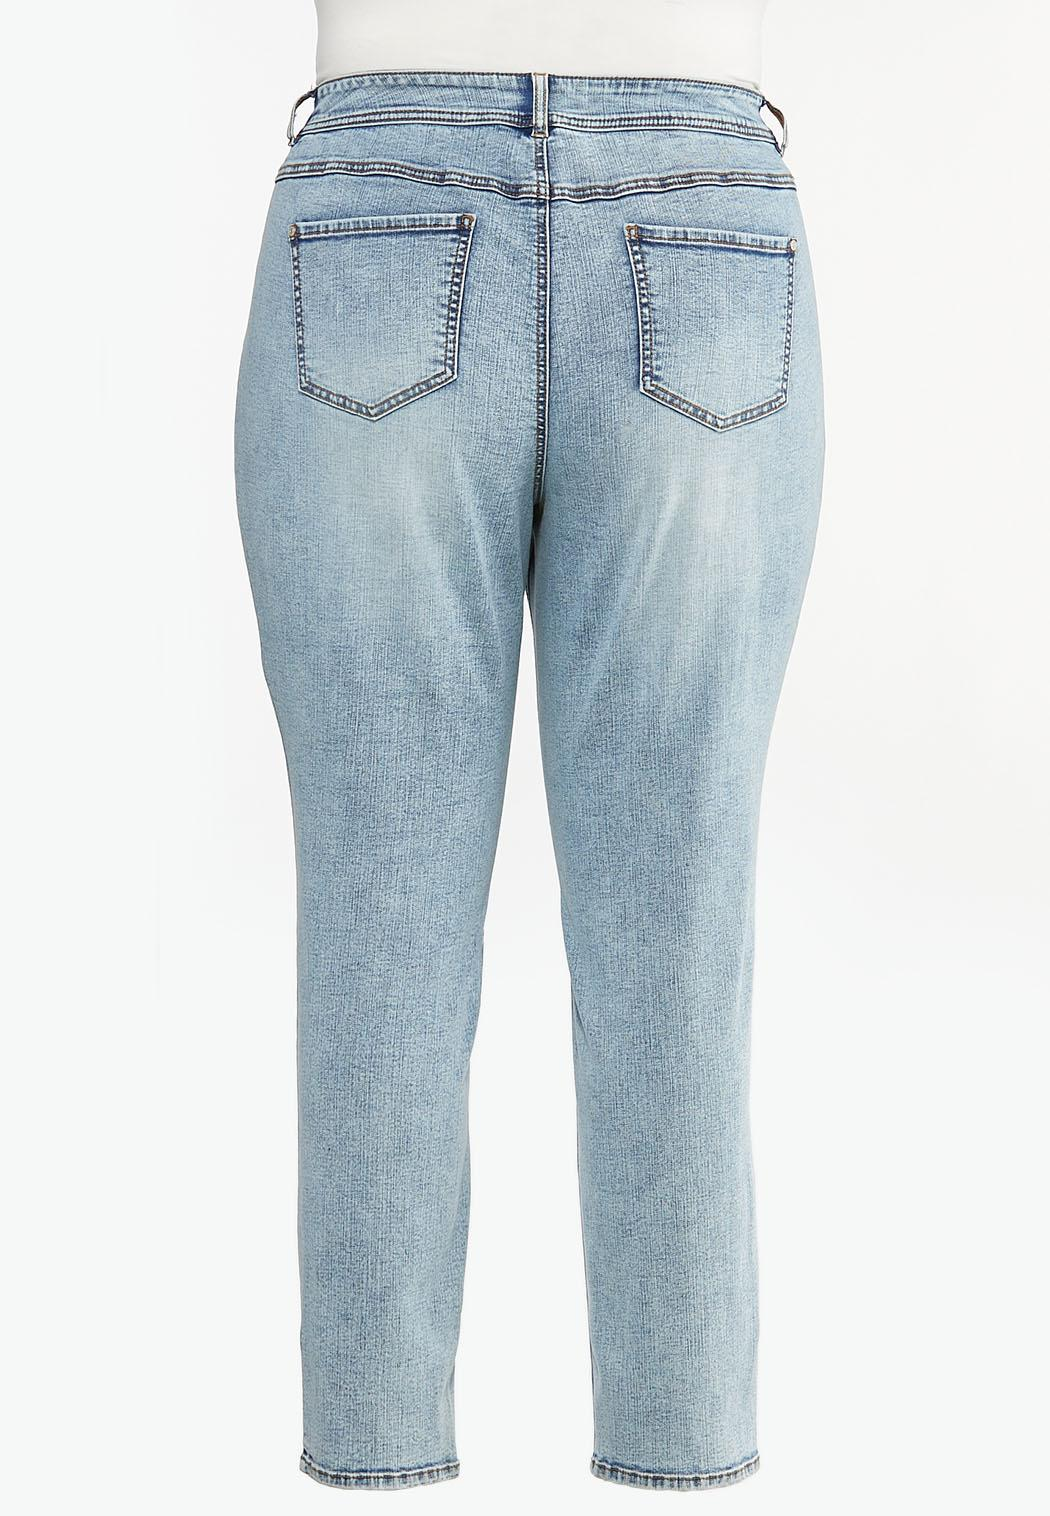 Plus Size Lightwash Skinny Jeans (Item #44449659)